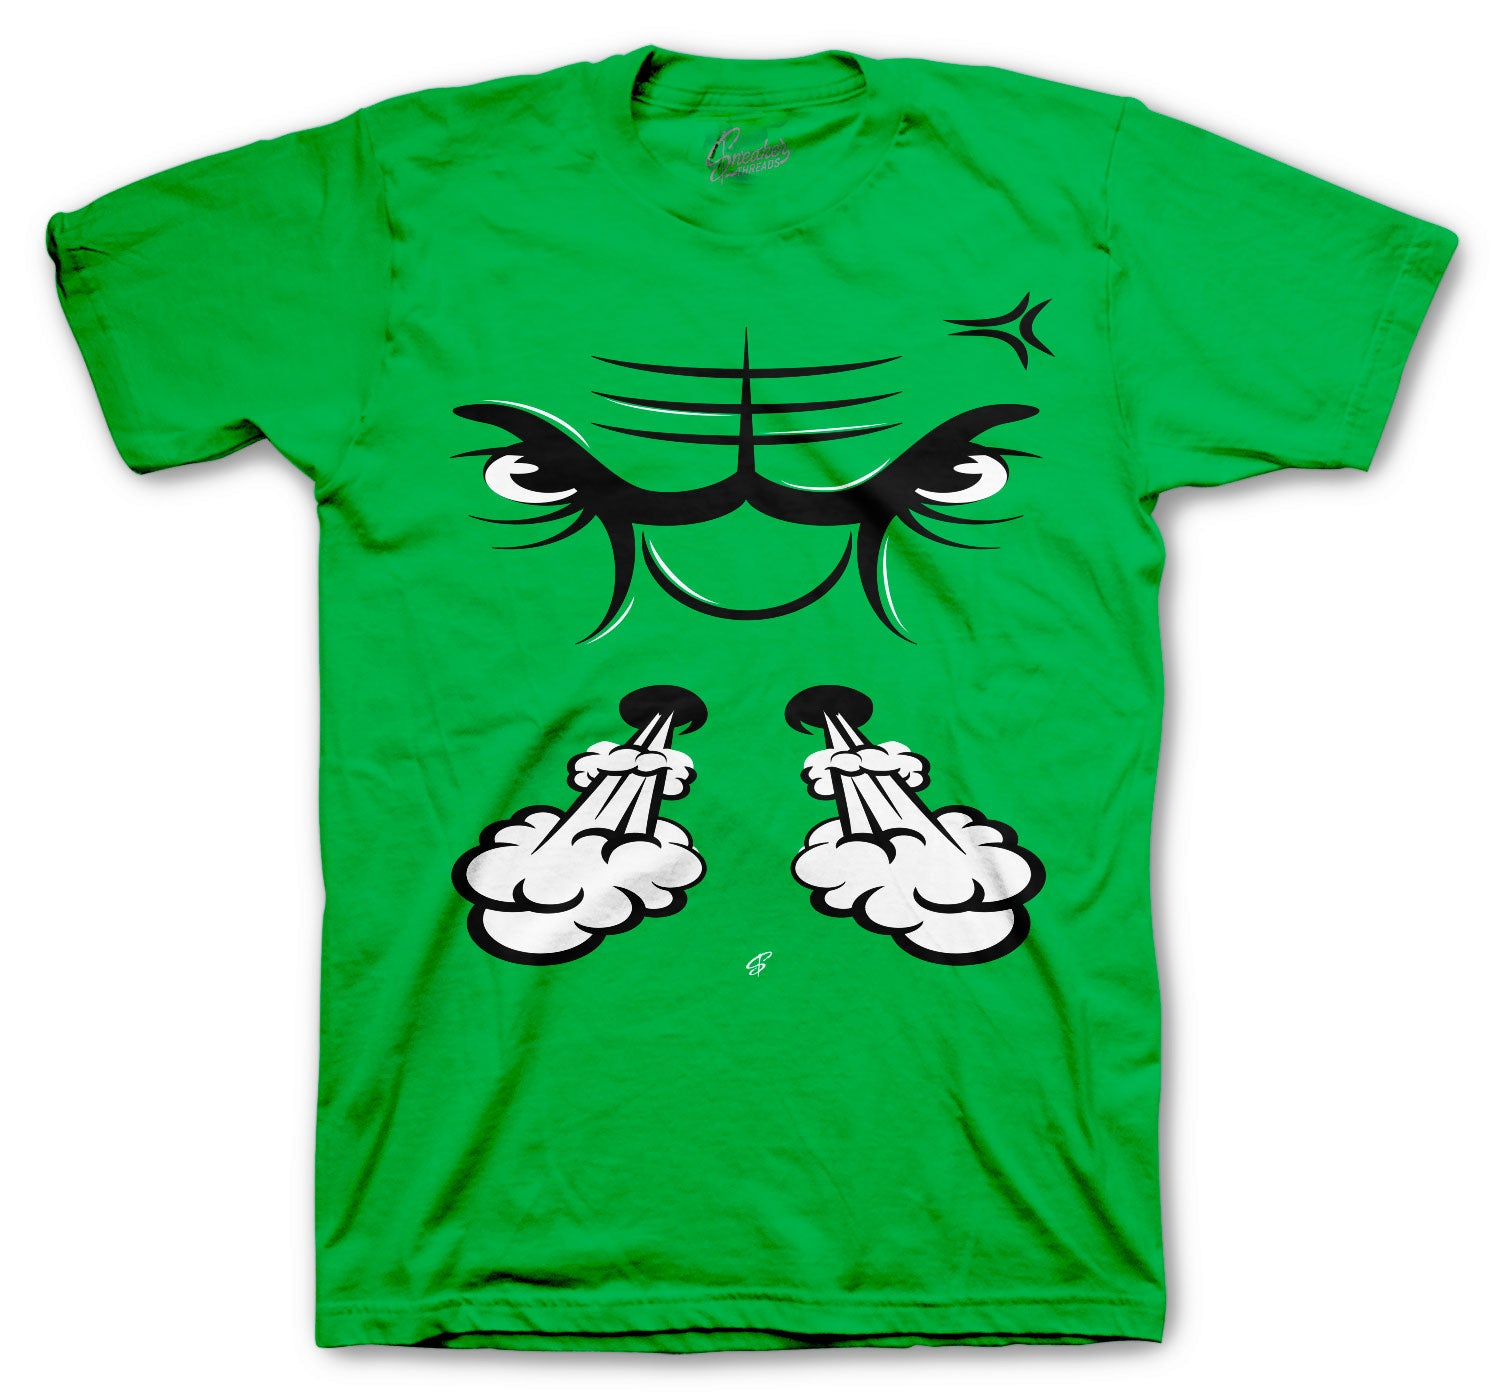 Jordan 13 Lucky Green Raging Face Shirt